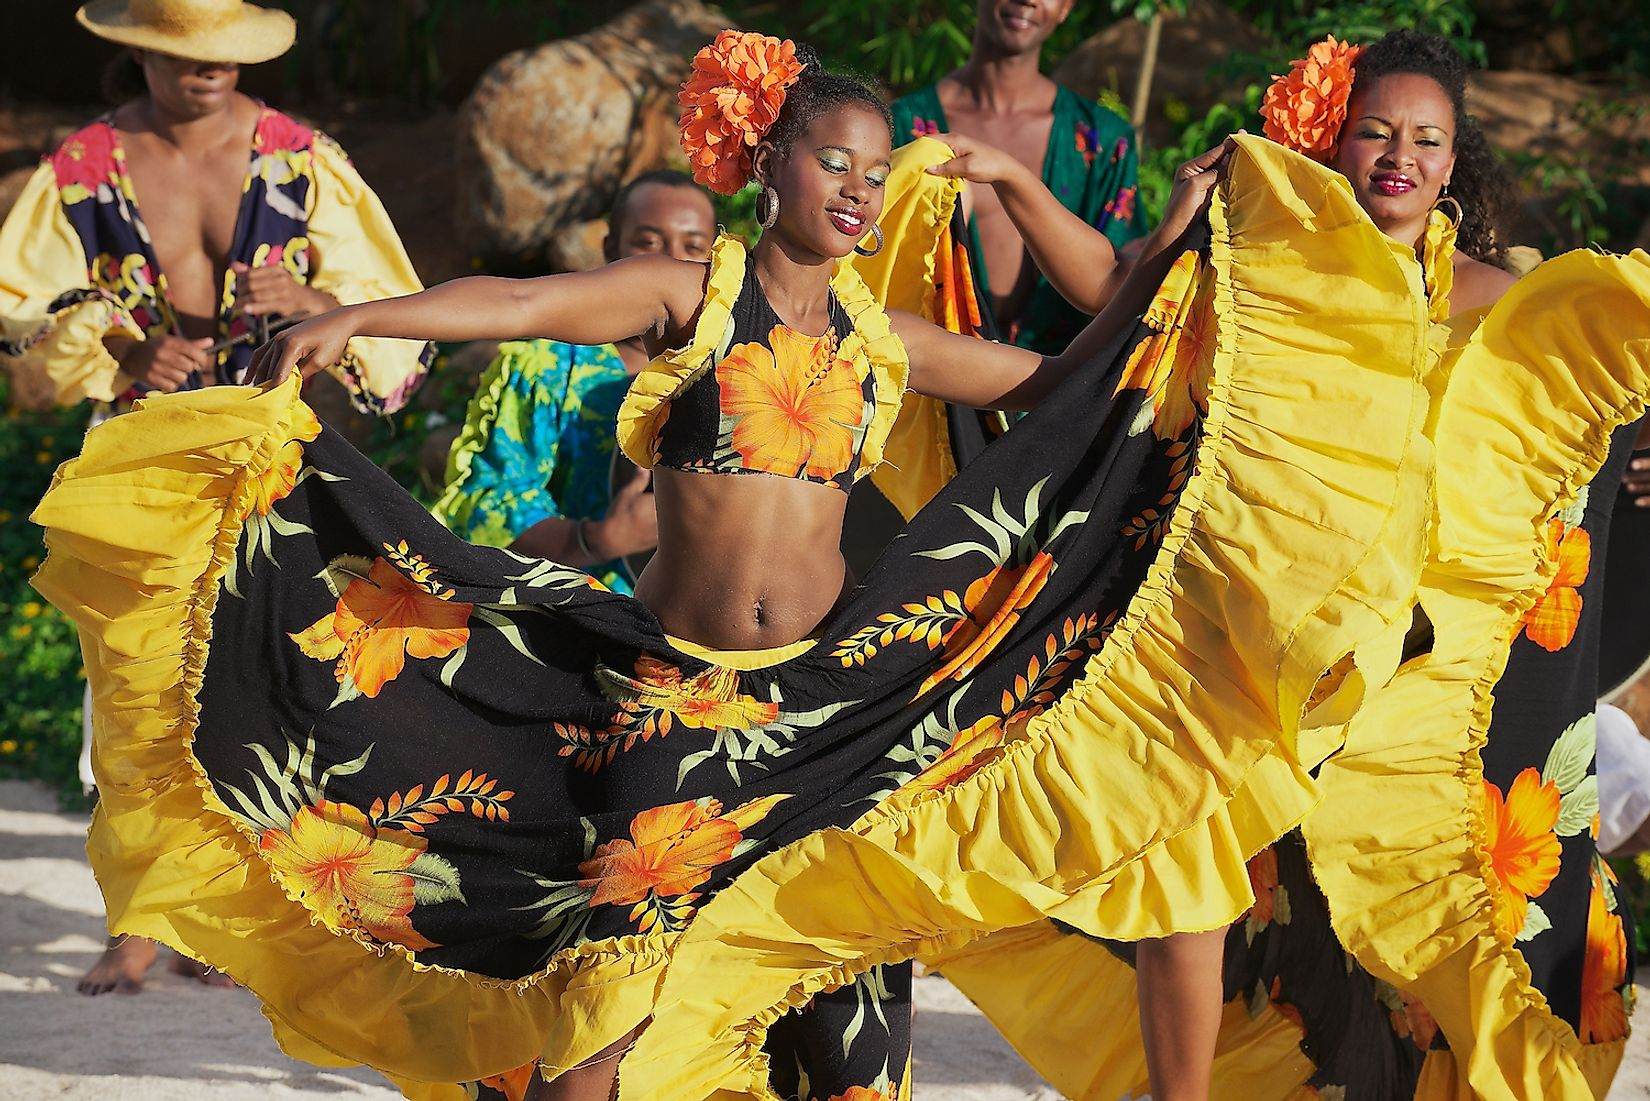 Traditional creole Sega dance at sunset in Ville Valio, Mauritius. Image credit: Dmitry Chulov/Shutterstock.com